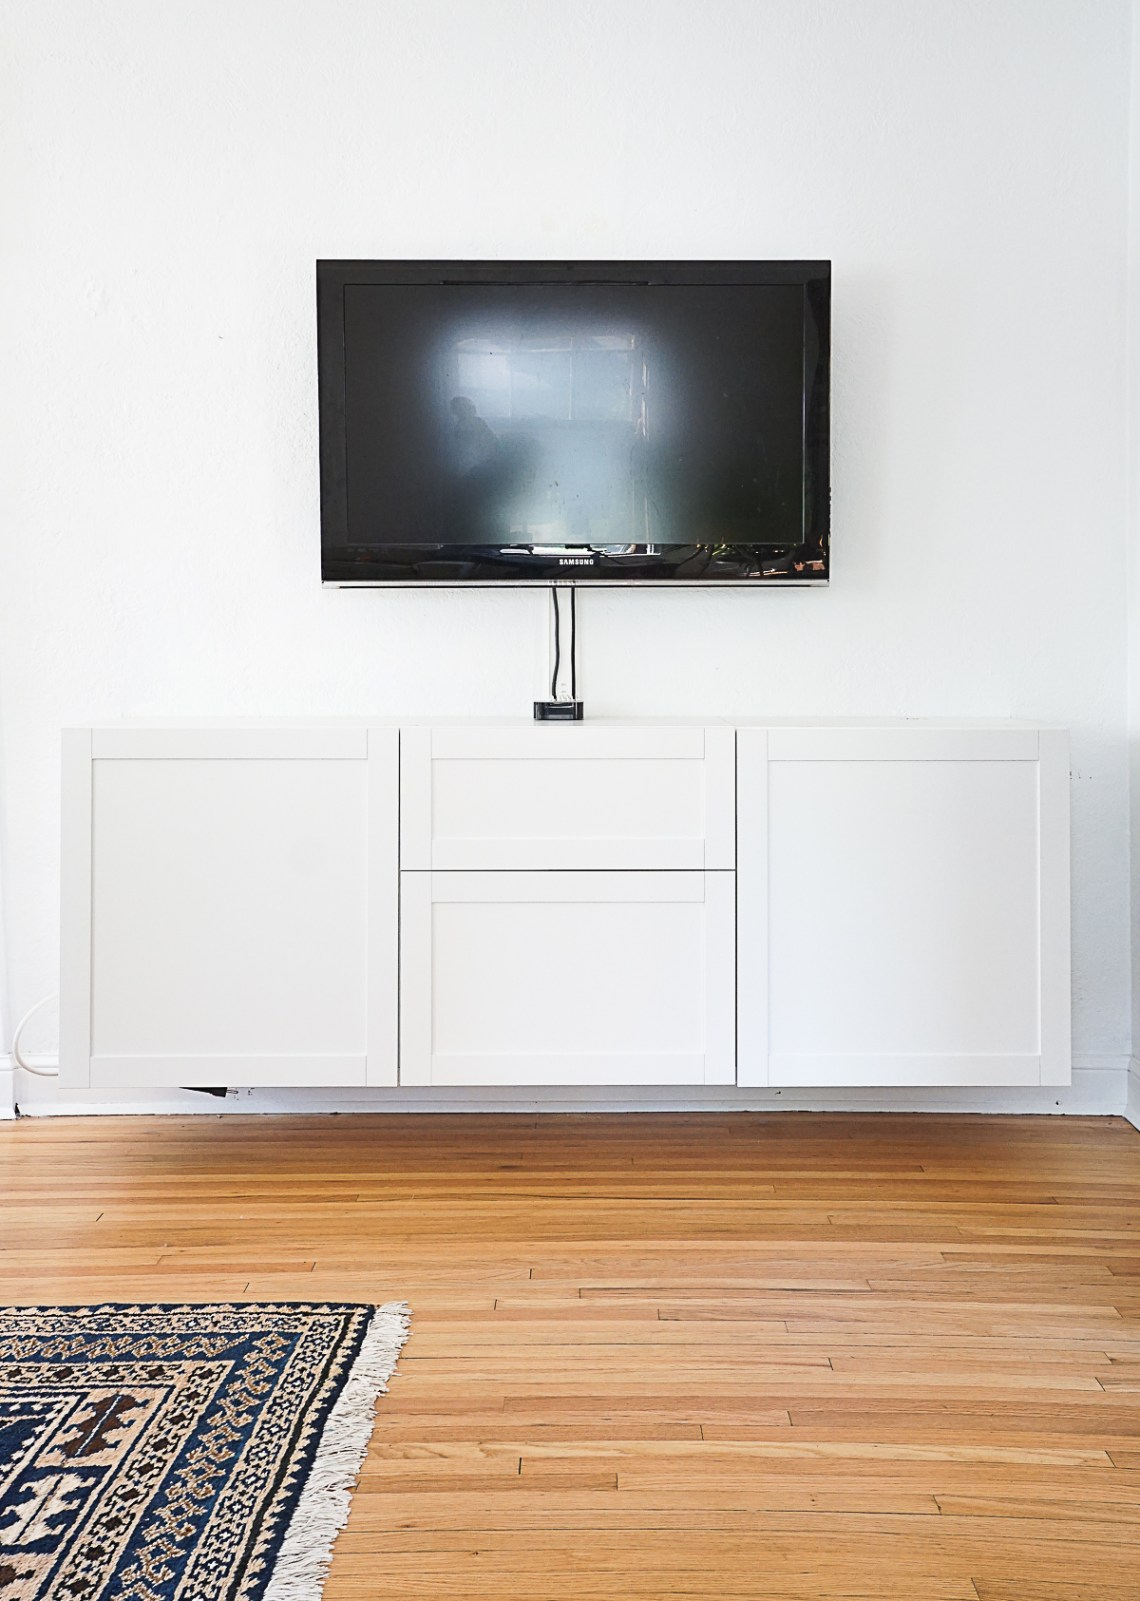 Get interior designer Tasha Schultz's fast and friendly tips for styling your media console with a mix of thrifted and new accessories.